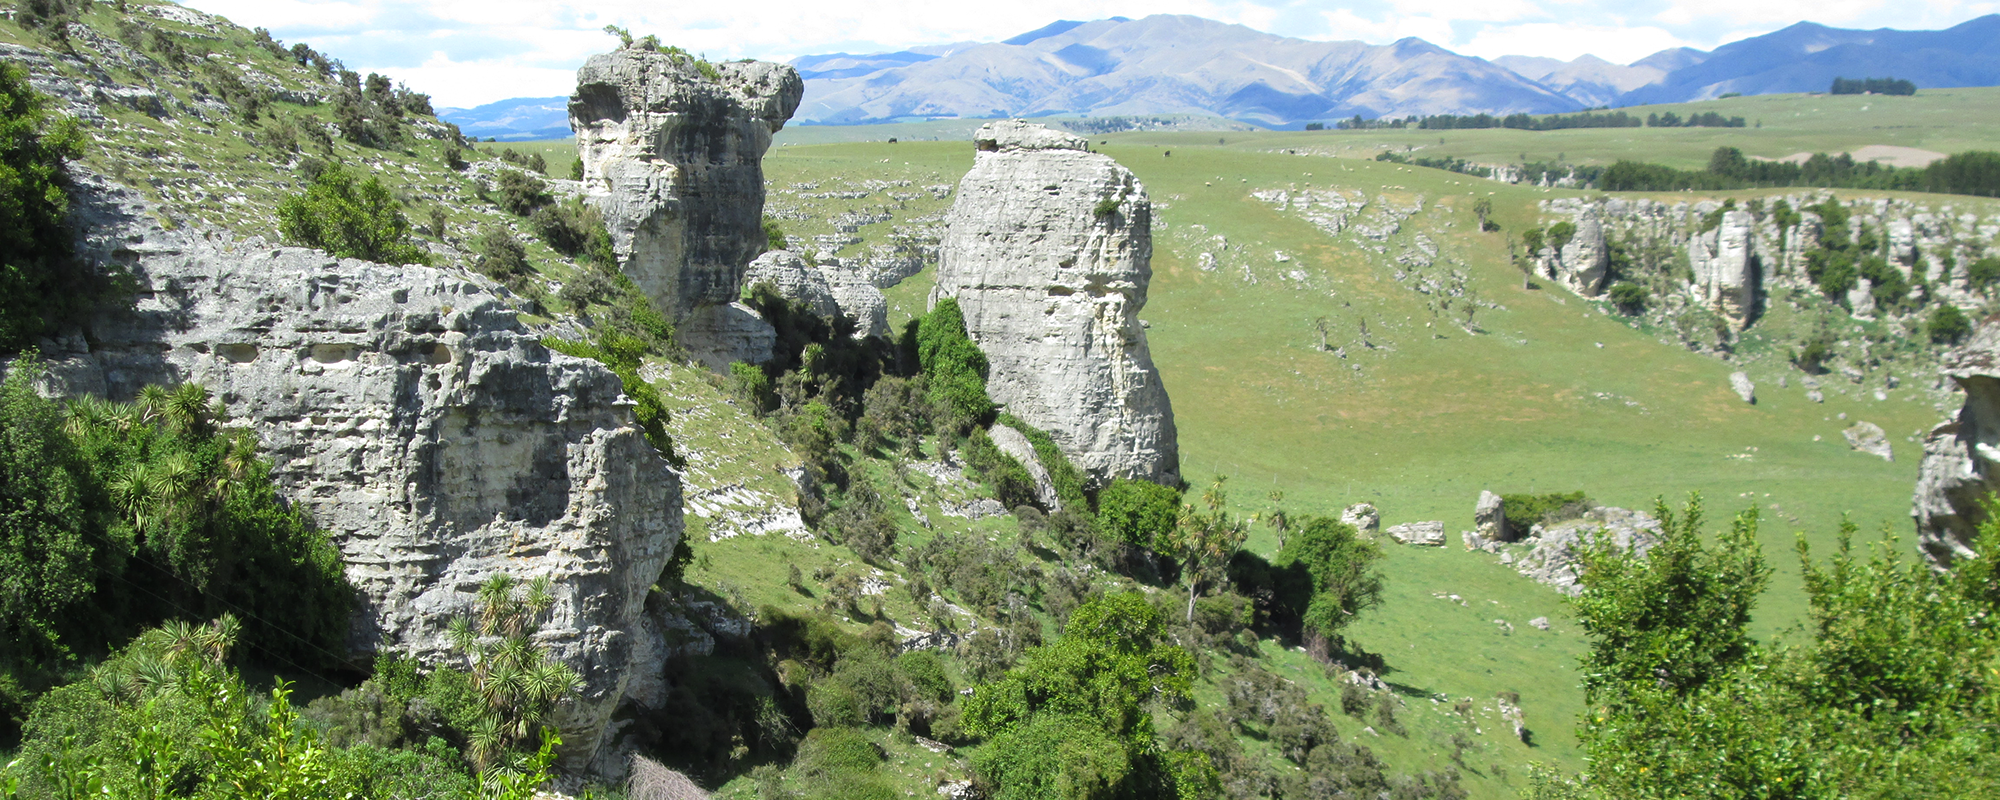 Limestone rocks at Craigmore Station, South Canterbury